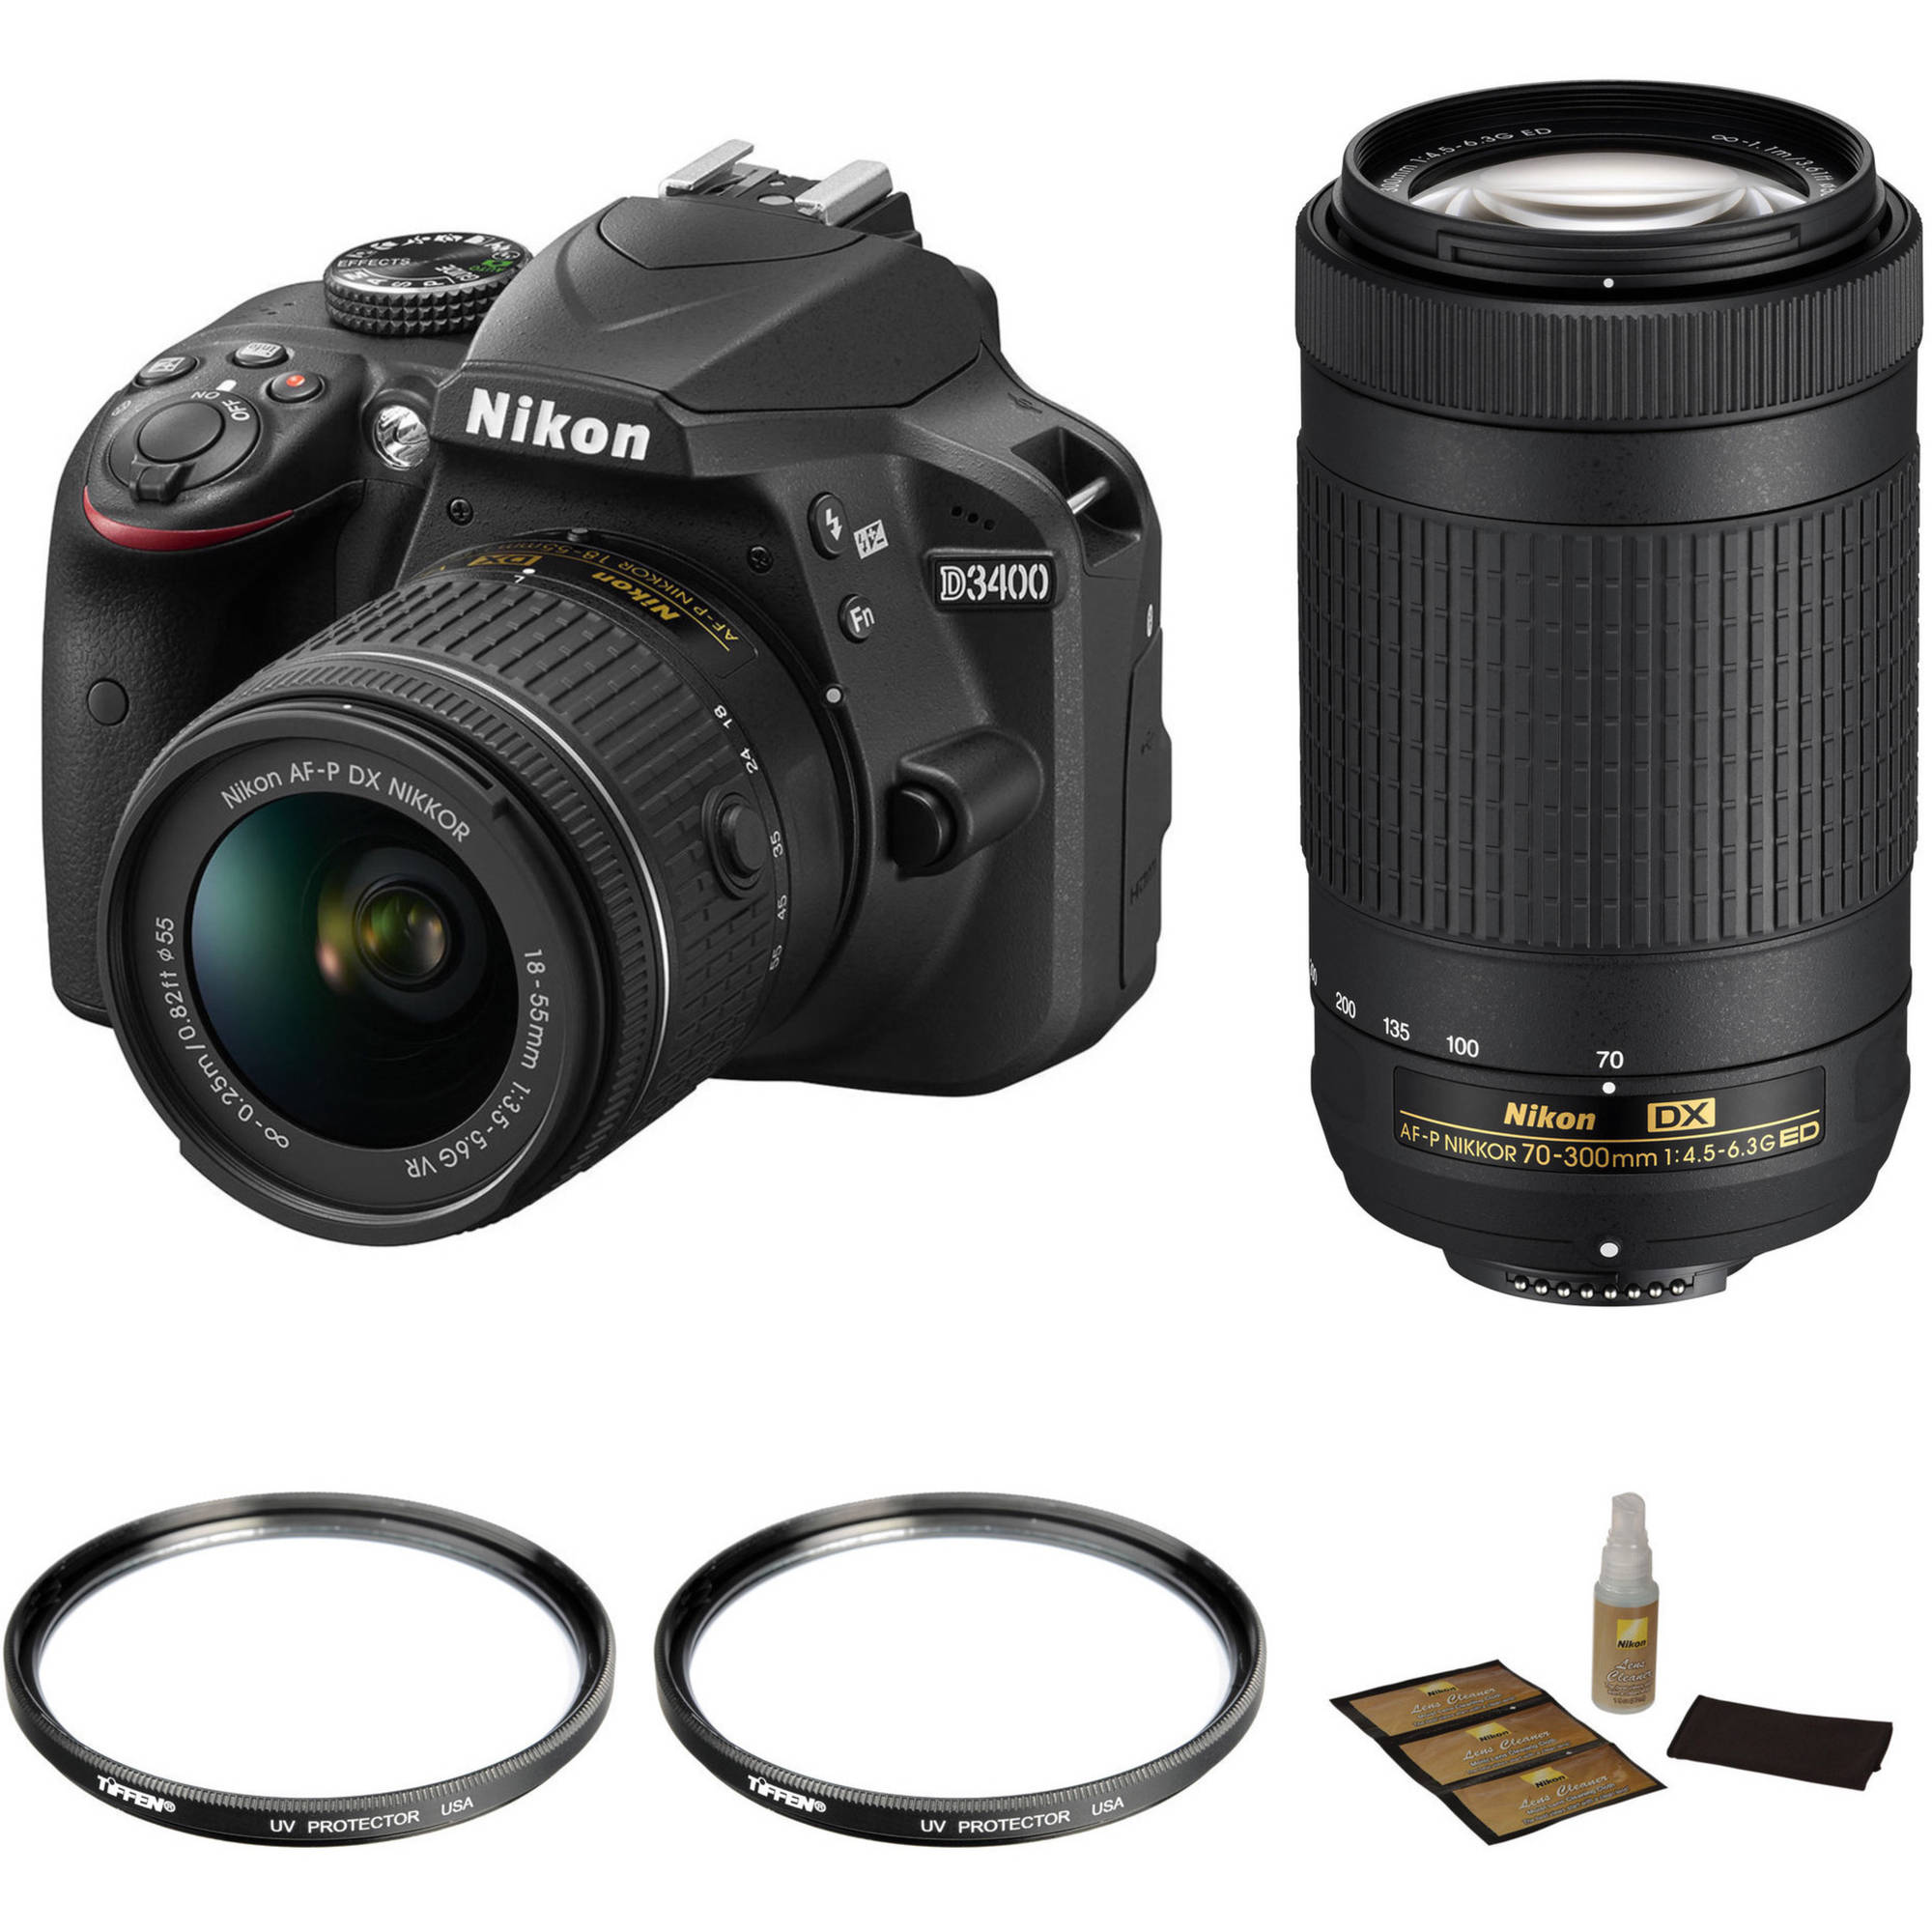 Nikon D3400 with 18-55mm and 70-300mm Lenses Basic Kit